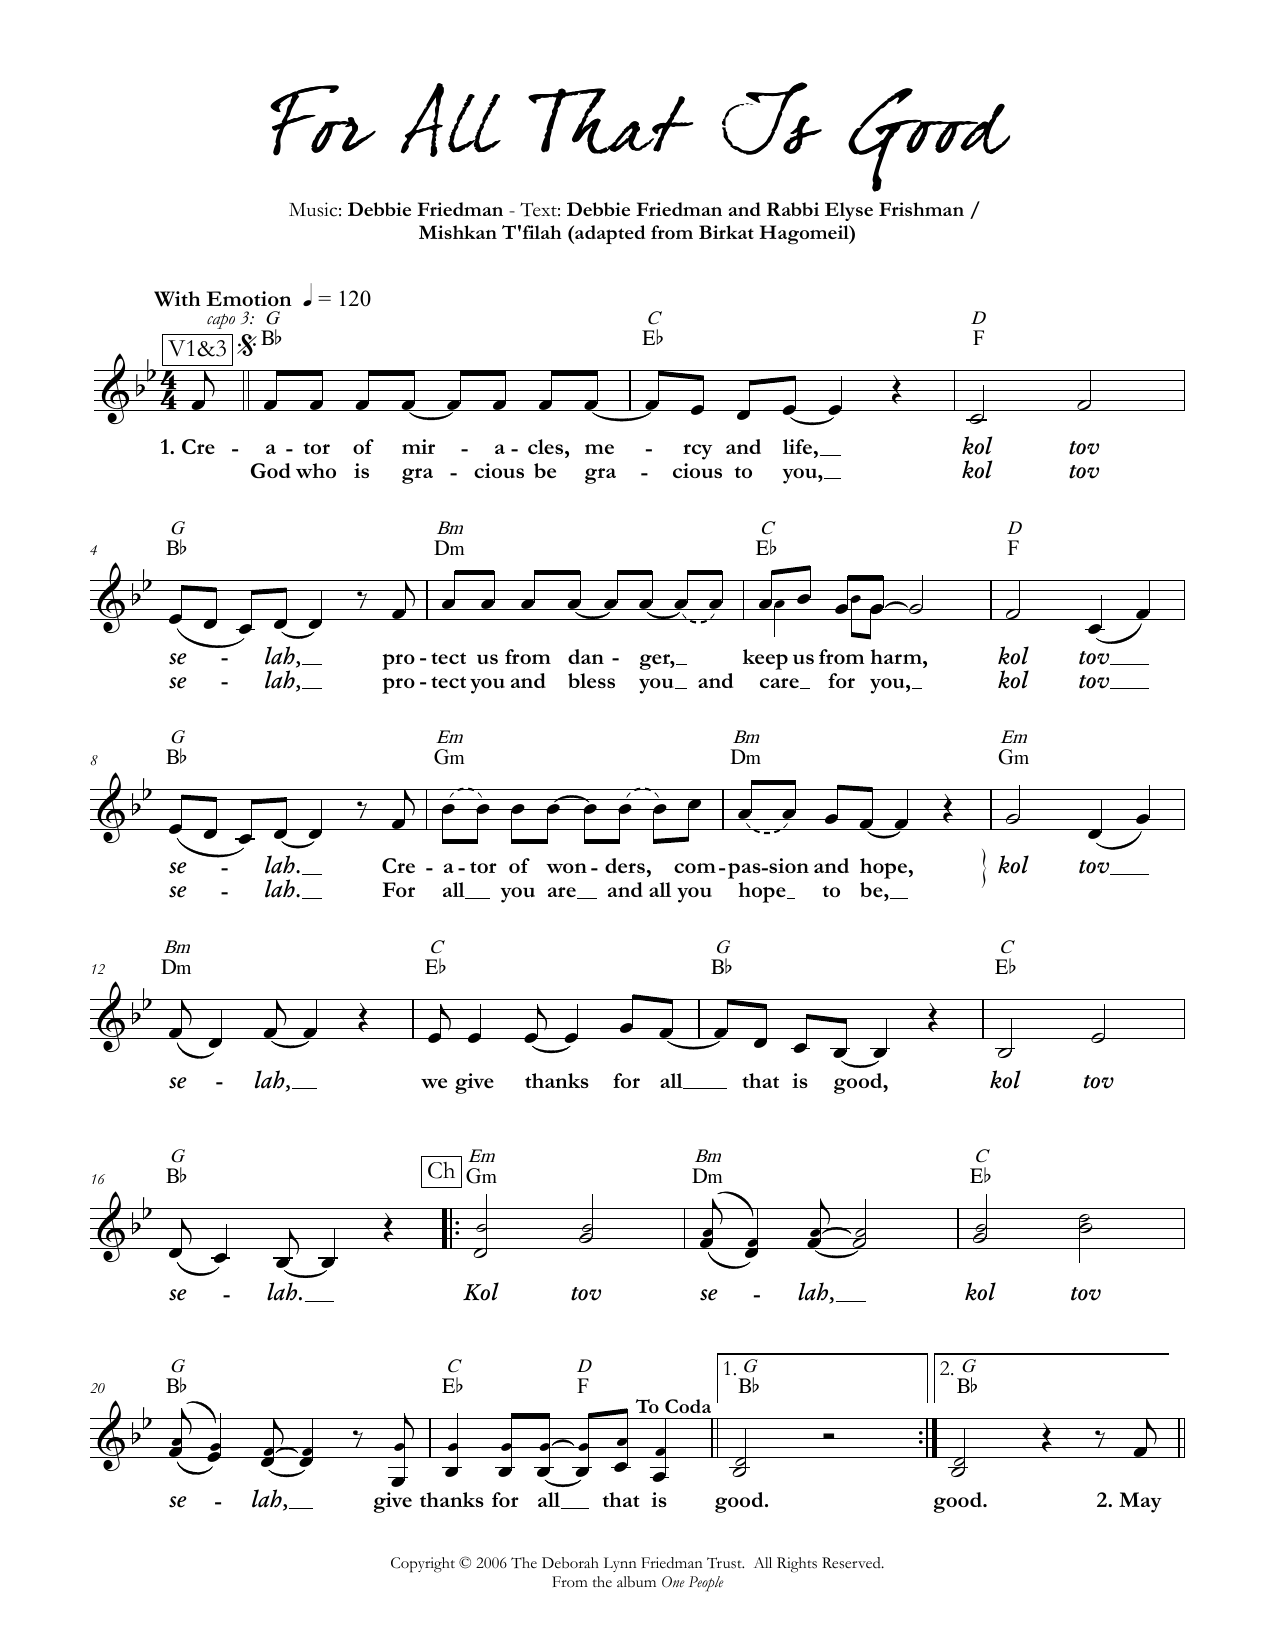 For All That Is Good Sheet Music